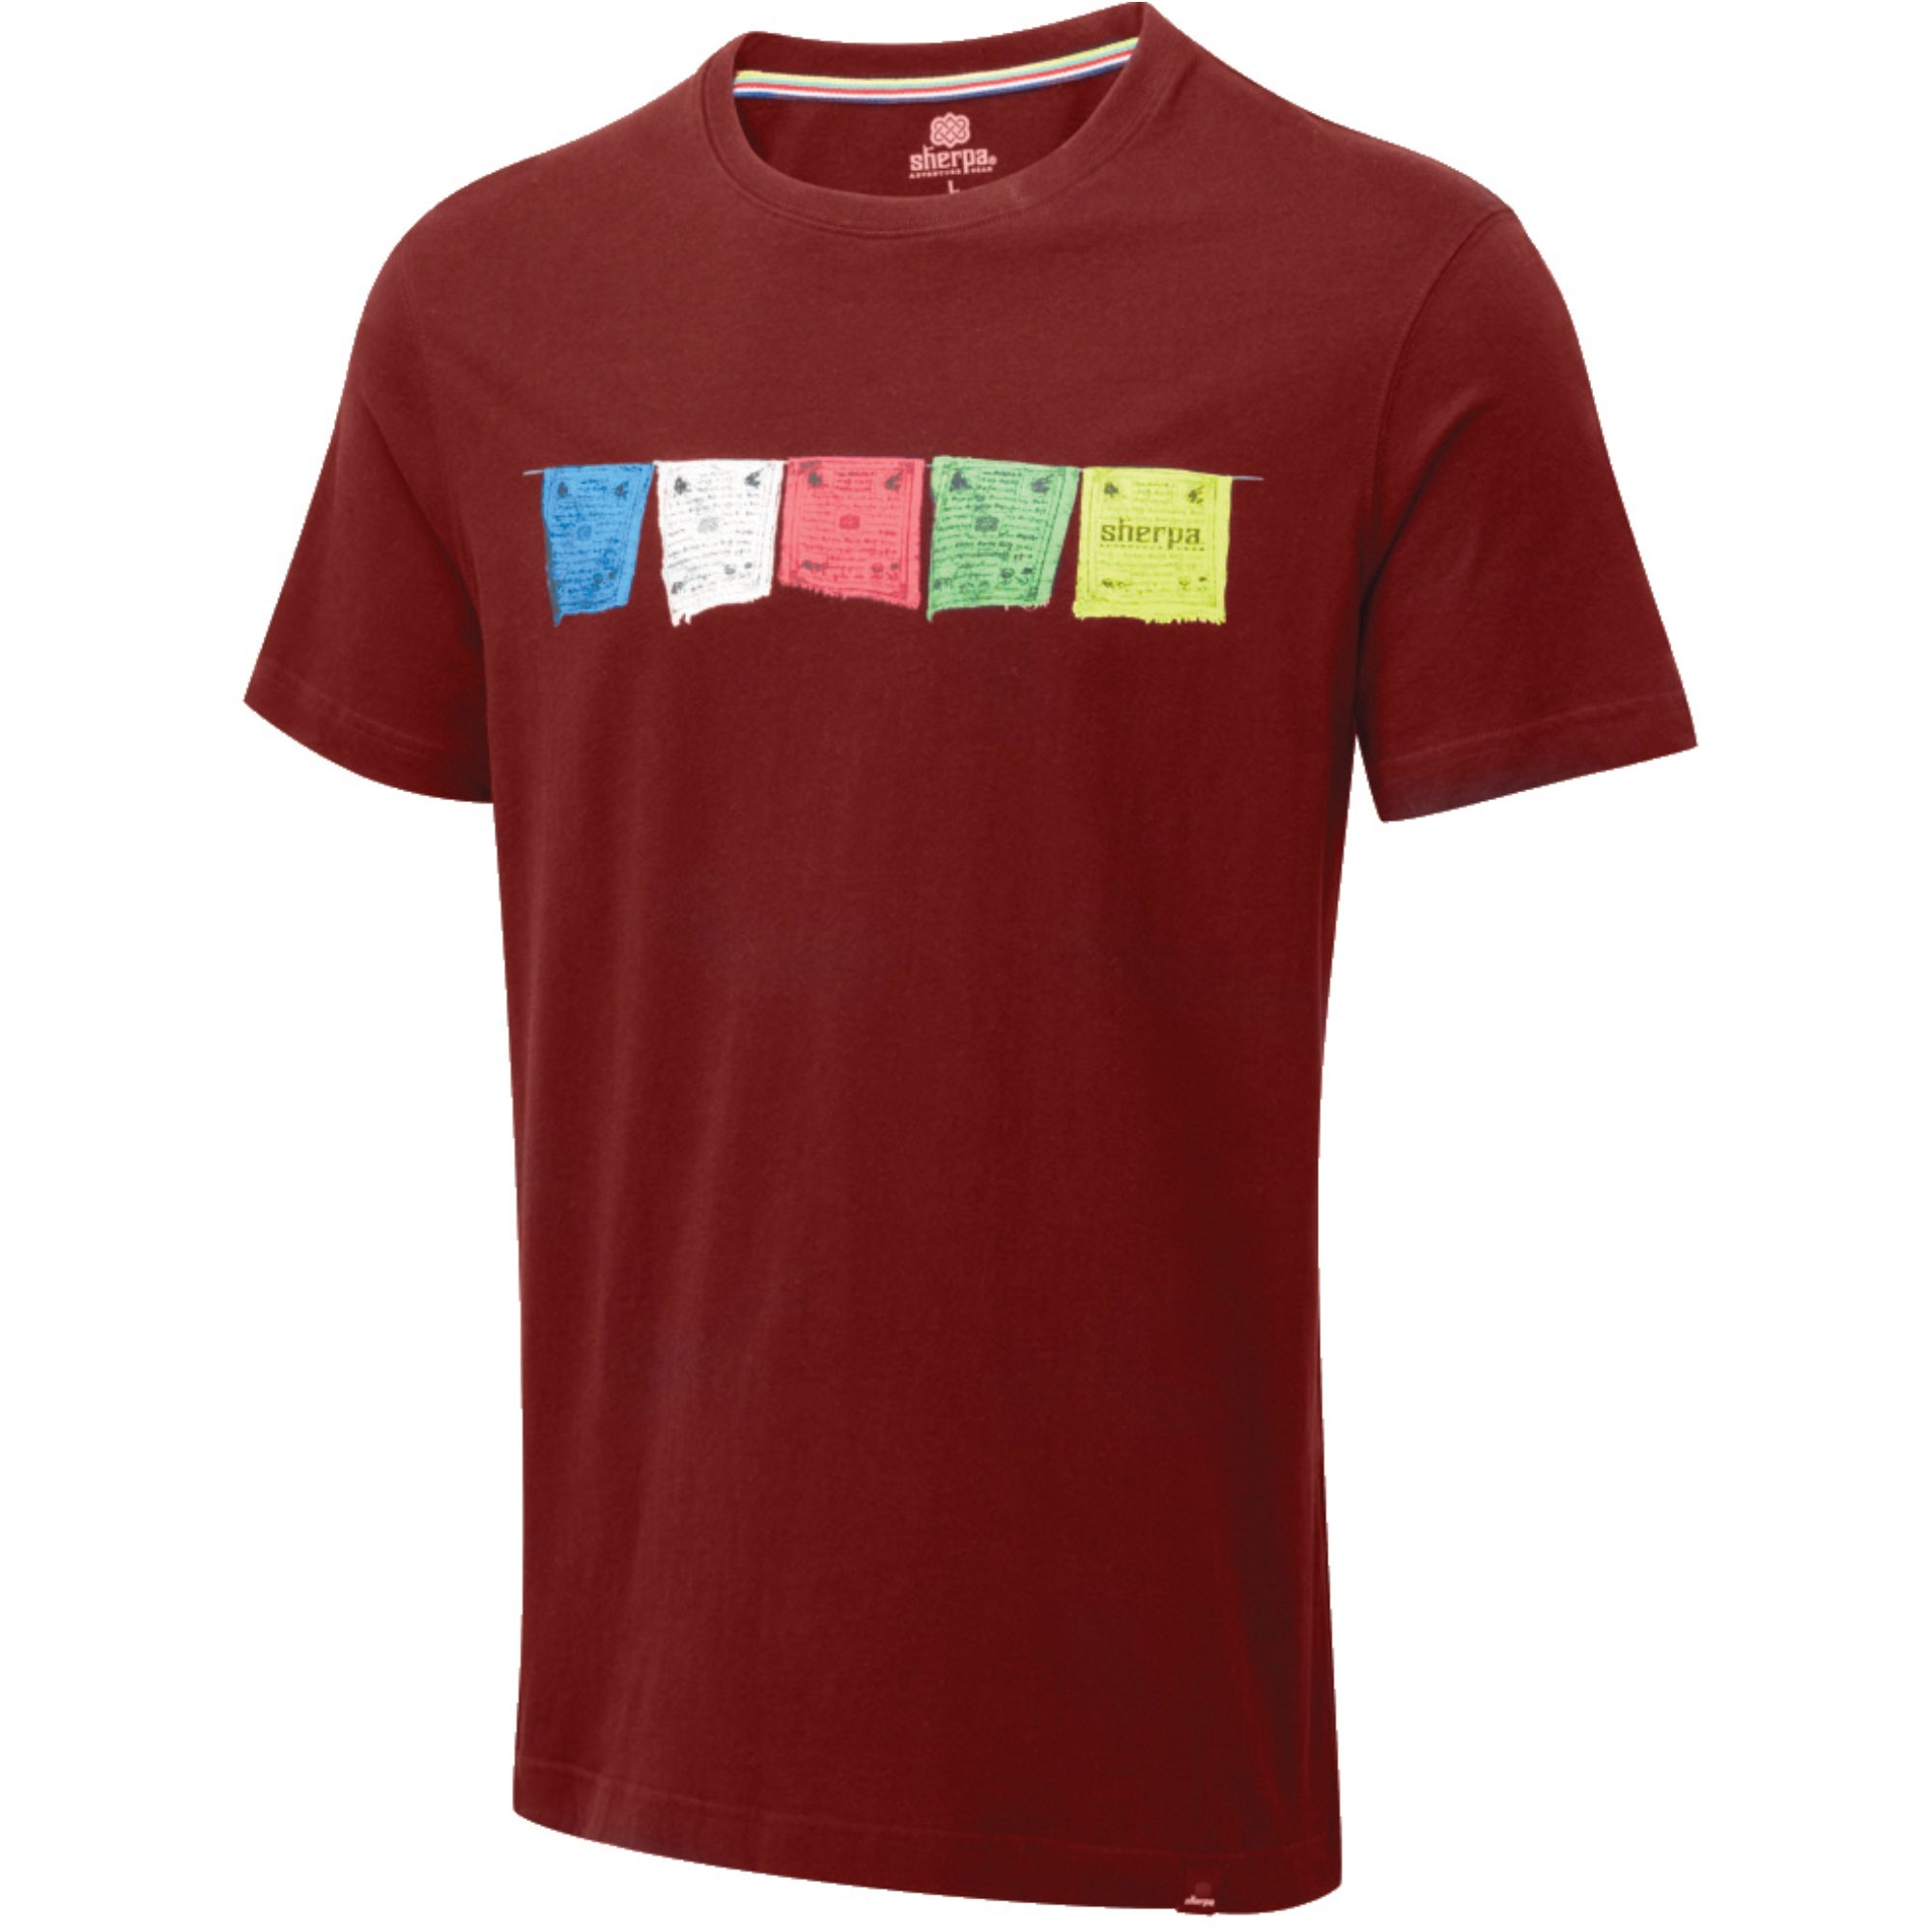 Sherpa Tarcho Tee - Potala Red